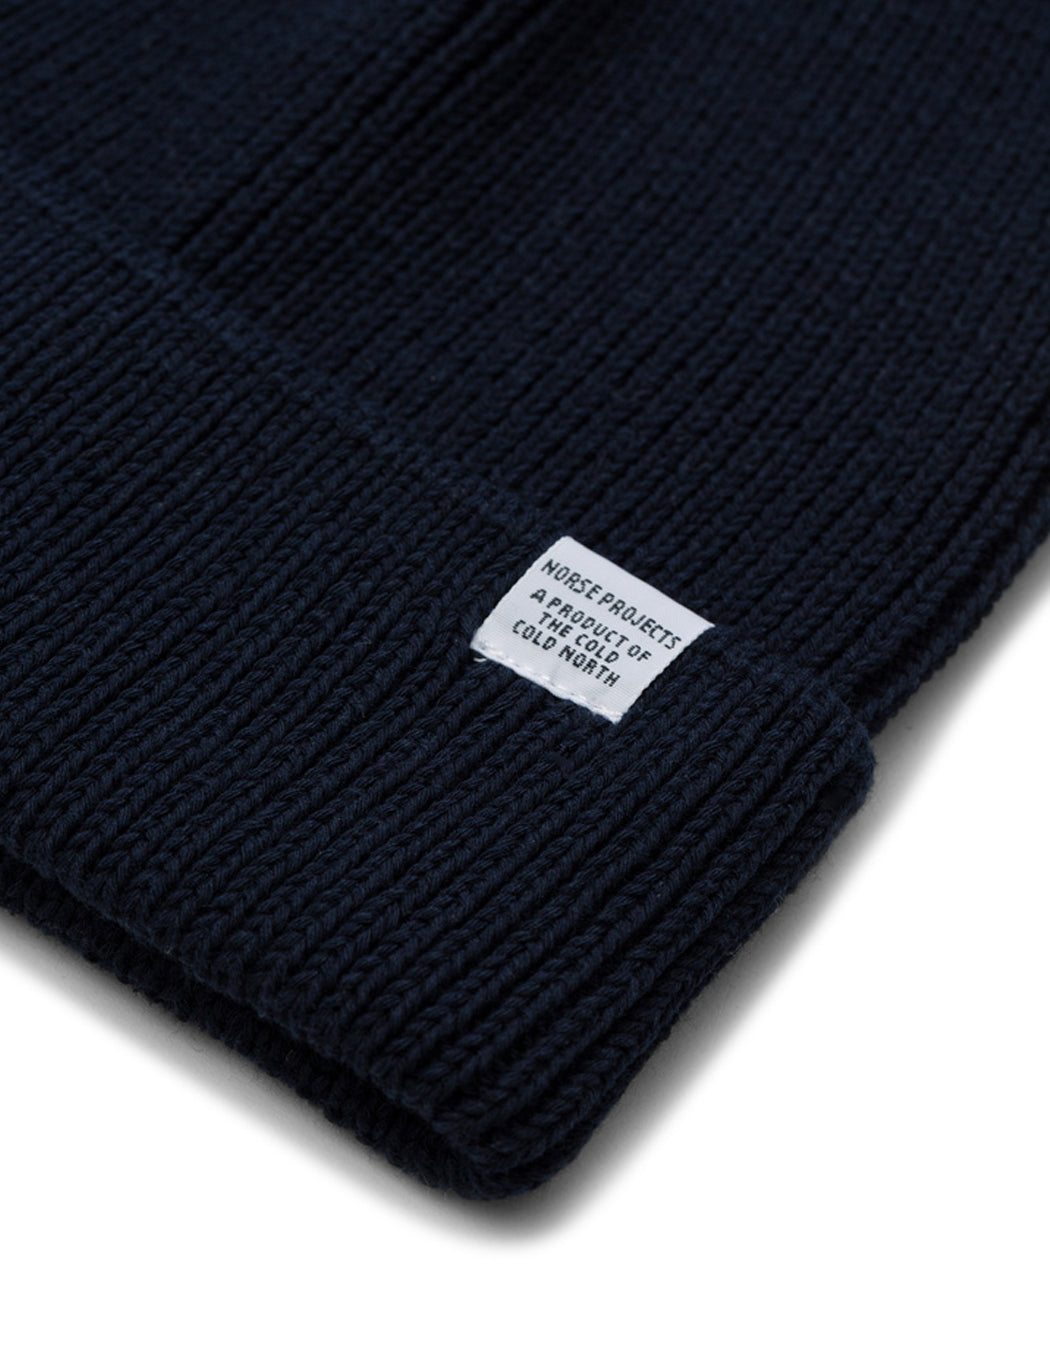 ad53ae0fc Norse Projects Cotton Watch Beanie Hat - Navy | URBAN EXCESS.